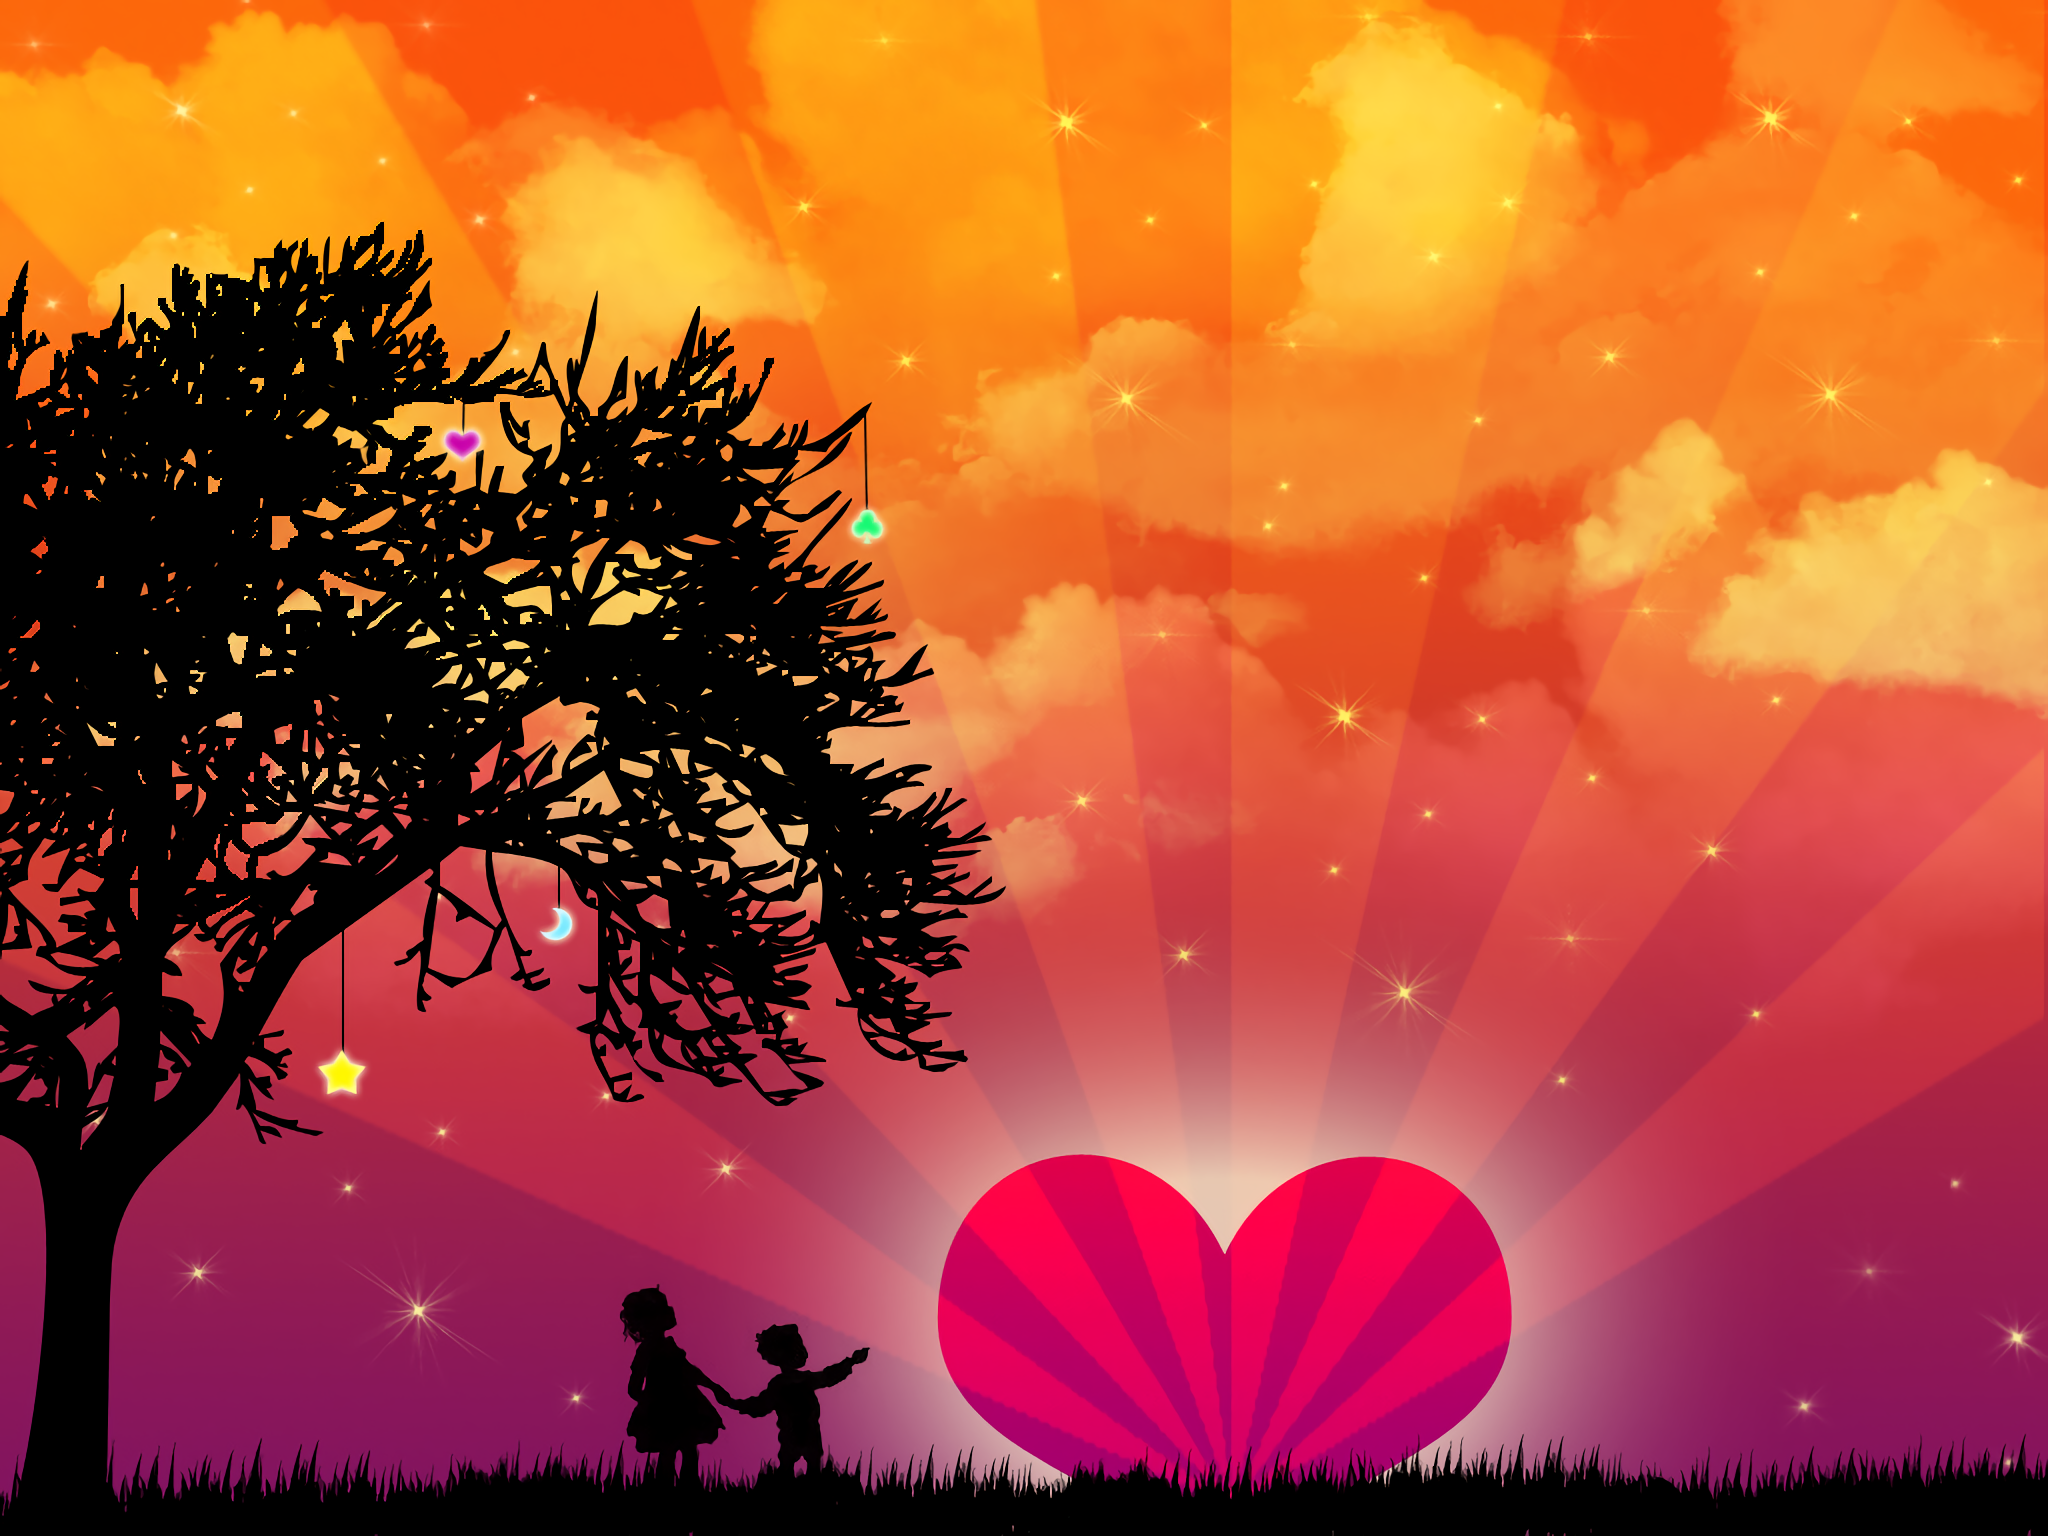 Lg cute Love Wallpaper : cute Love Wallpaper Full HD Download Desktop Mobile Backgrounds HD Wallpapers Pinterest Hd ...